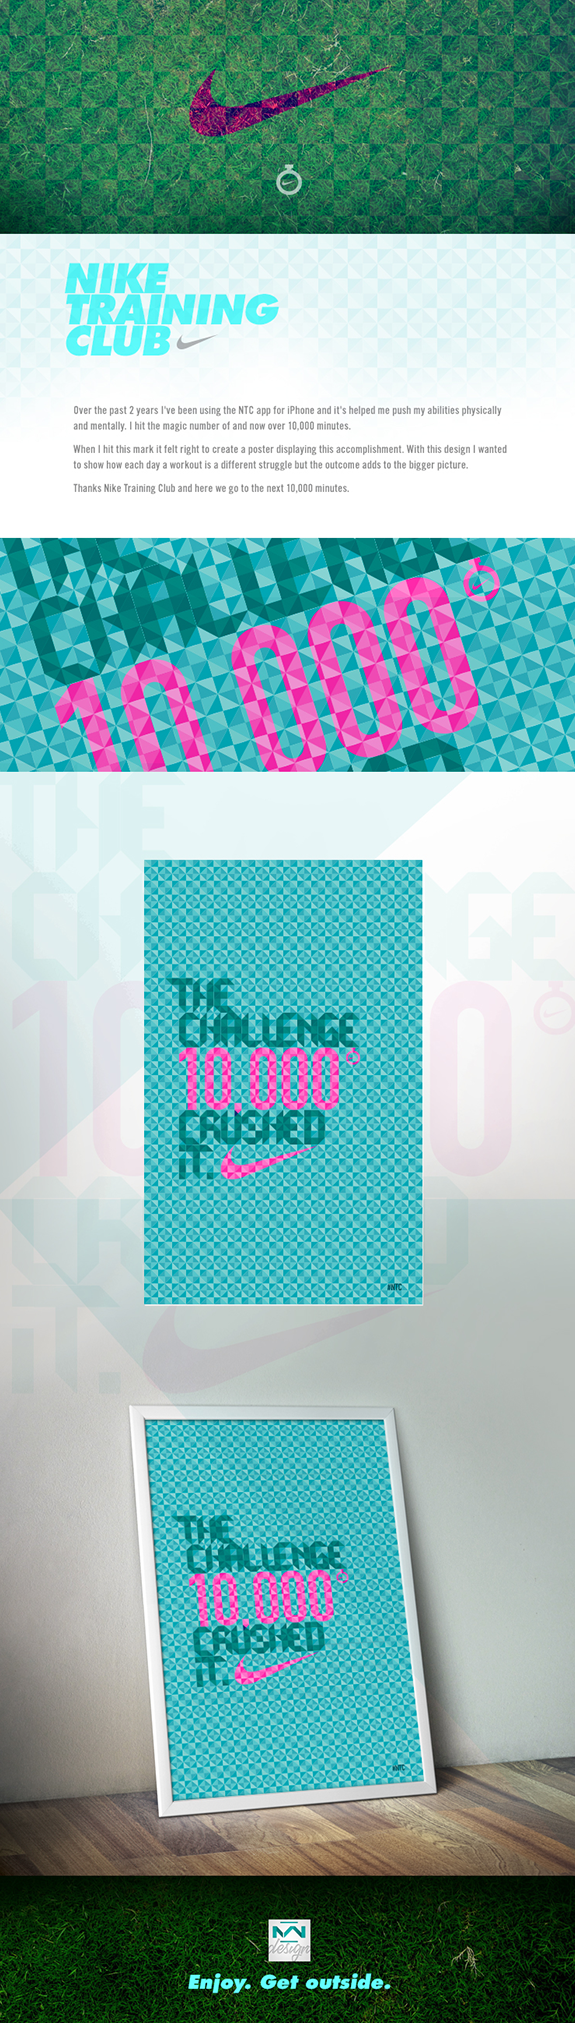 Nike poster illustration developed after completing 10,000 hours of exercise.